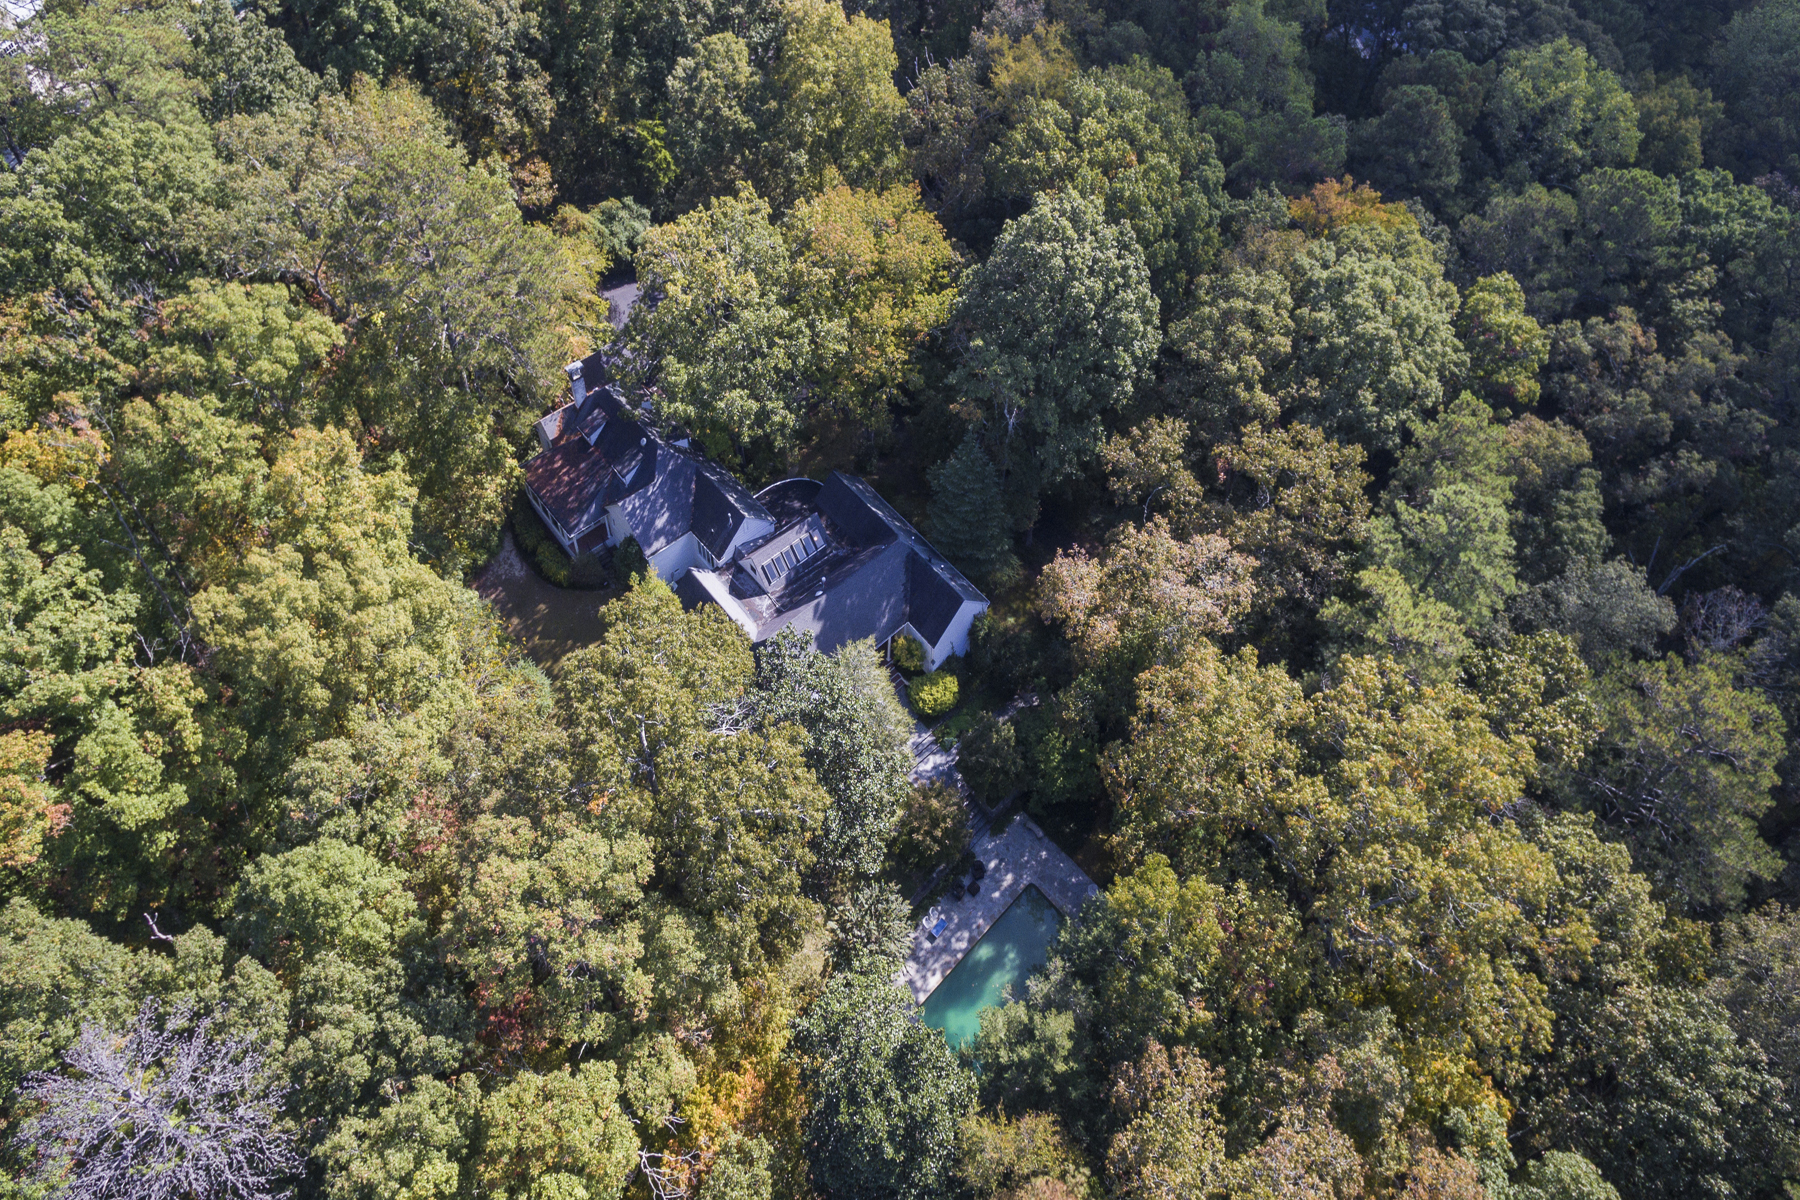 Single Family Home for Sale at Charming Private Home On 4.77 Acres 4501 Harris Trail NW Buckhead, Atlanta, Georgia, 30327 United States